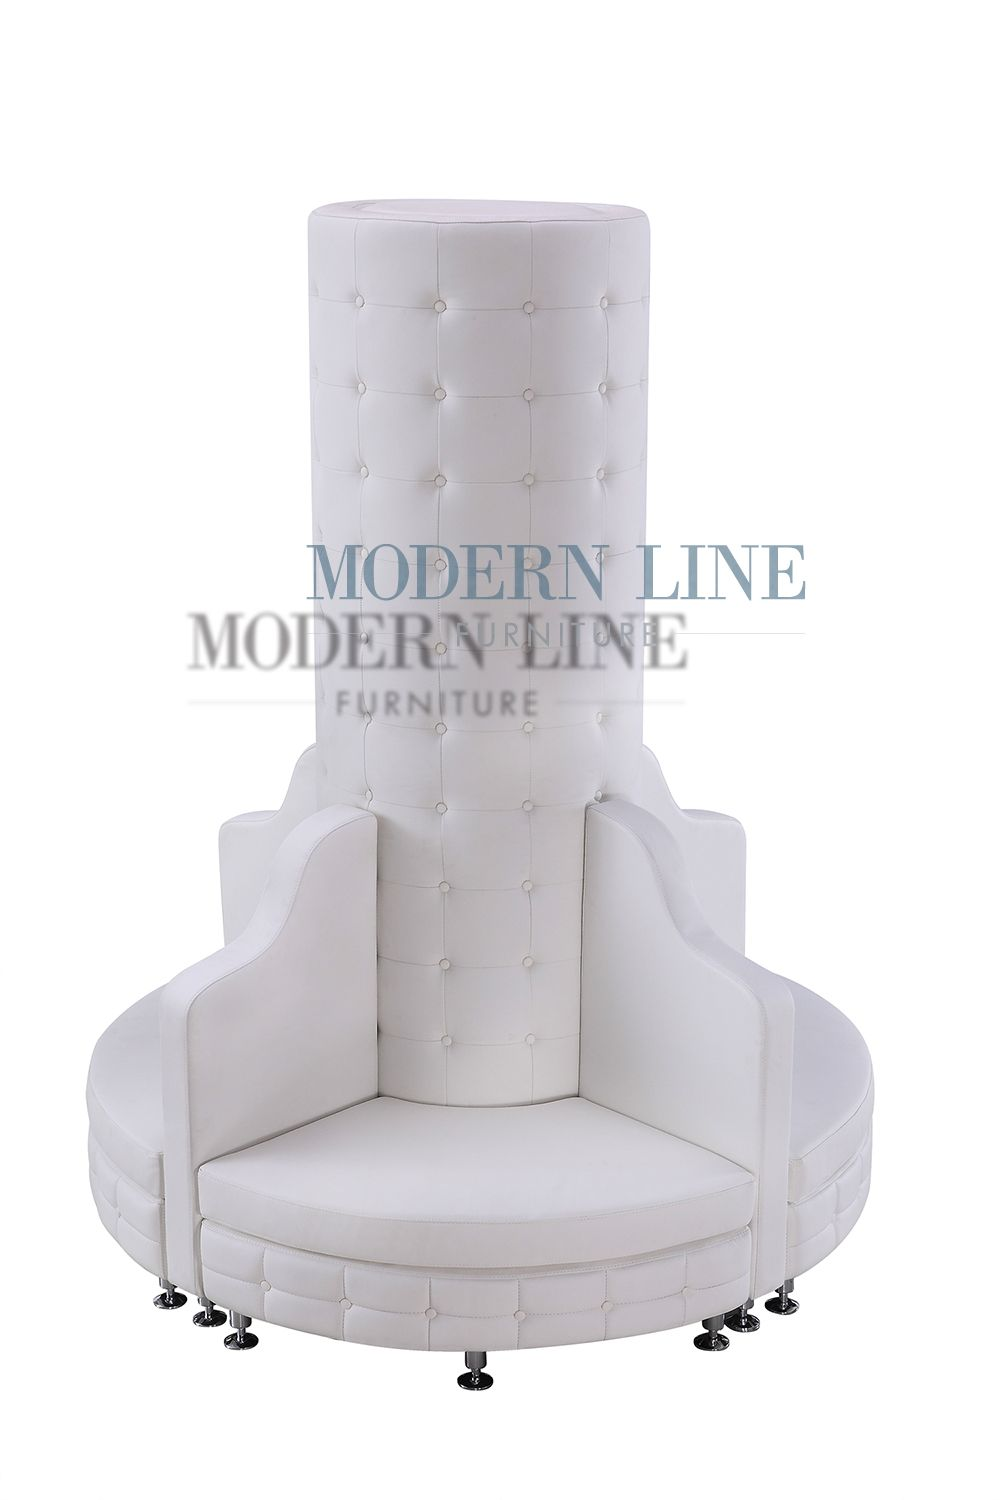 Tufted White Leather Sofa Modern On Tall Column Seating Arrangement 1